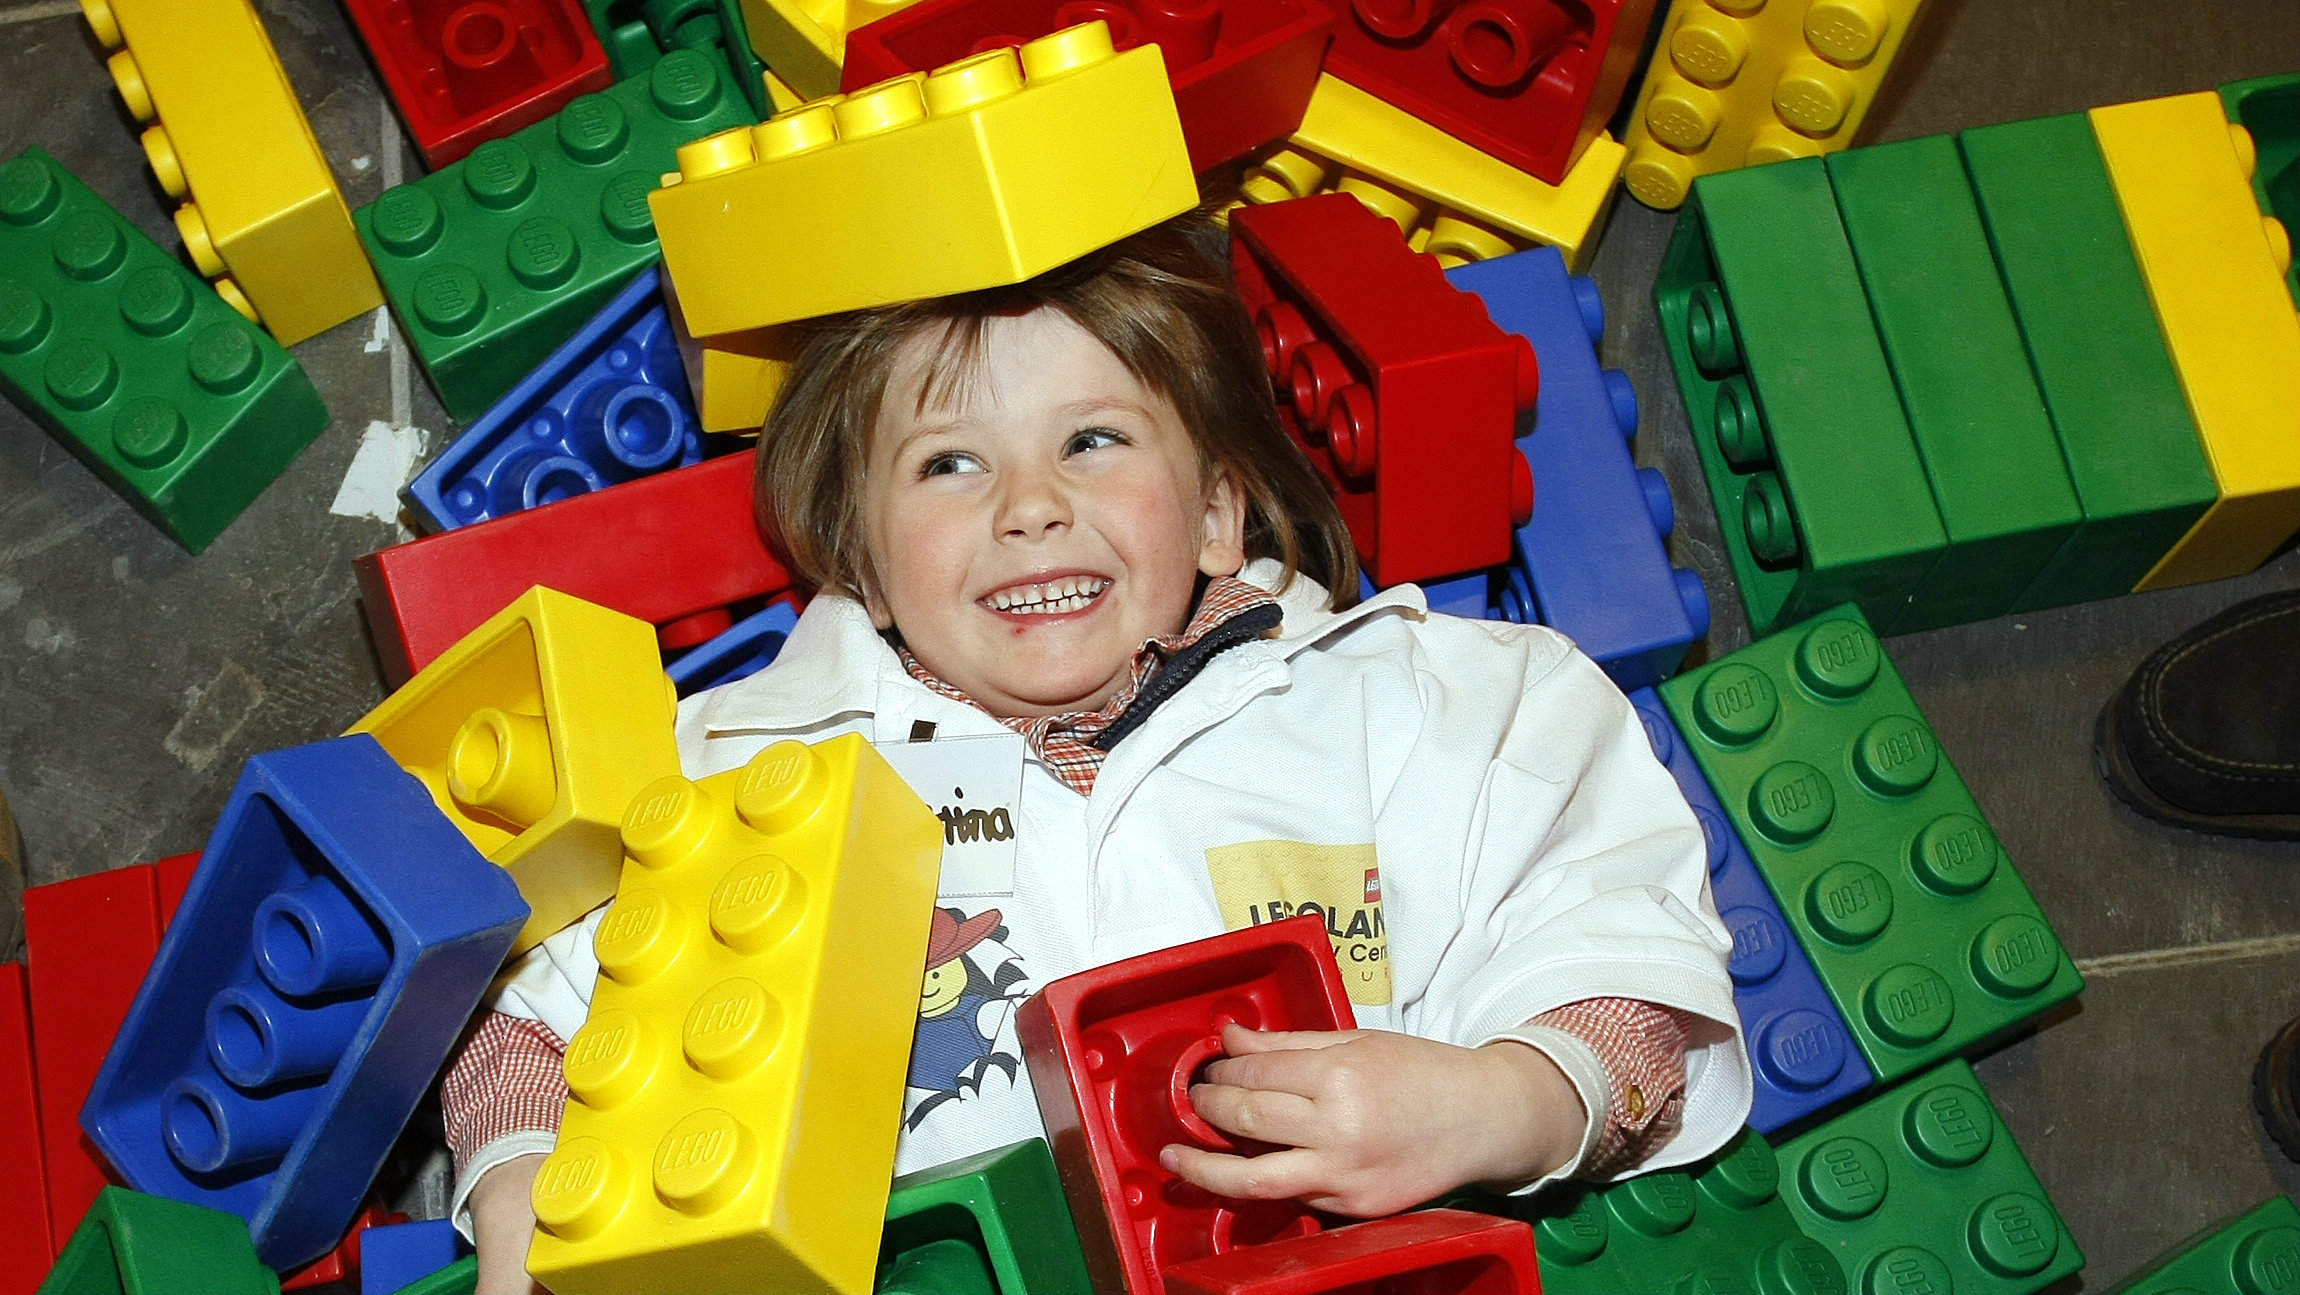 A girl plays with oversized legos.